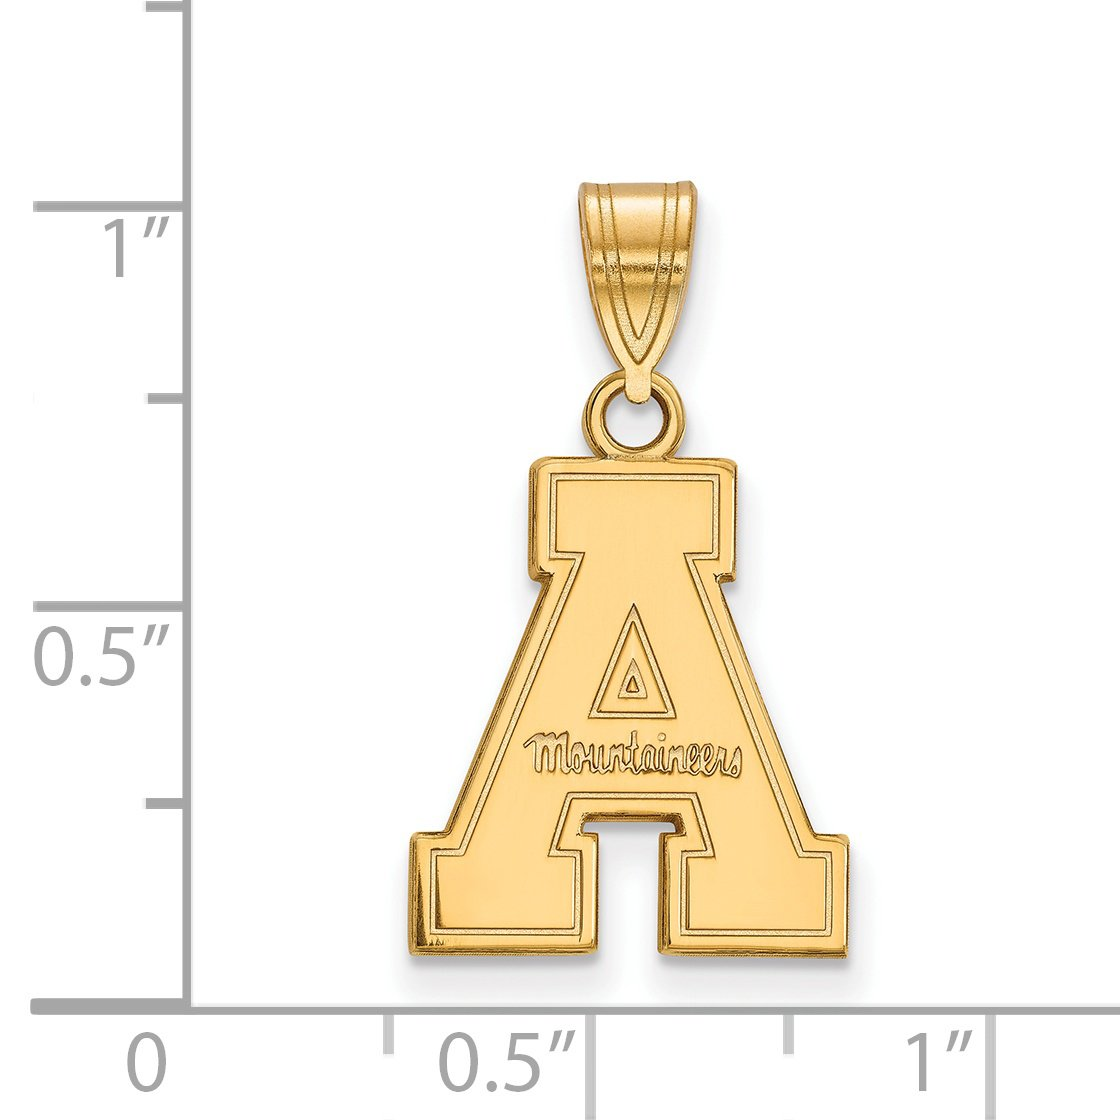 Appalachian State Mountaineers School Letter Logo Pendant Gold Plated Sterling Silver 17x14mm